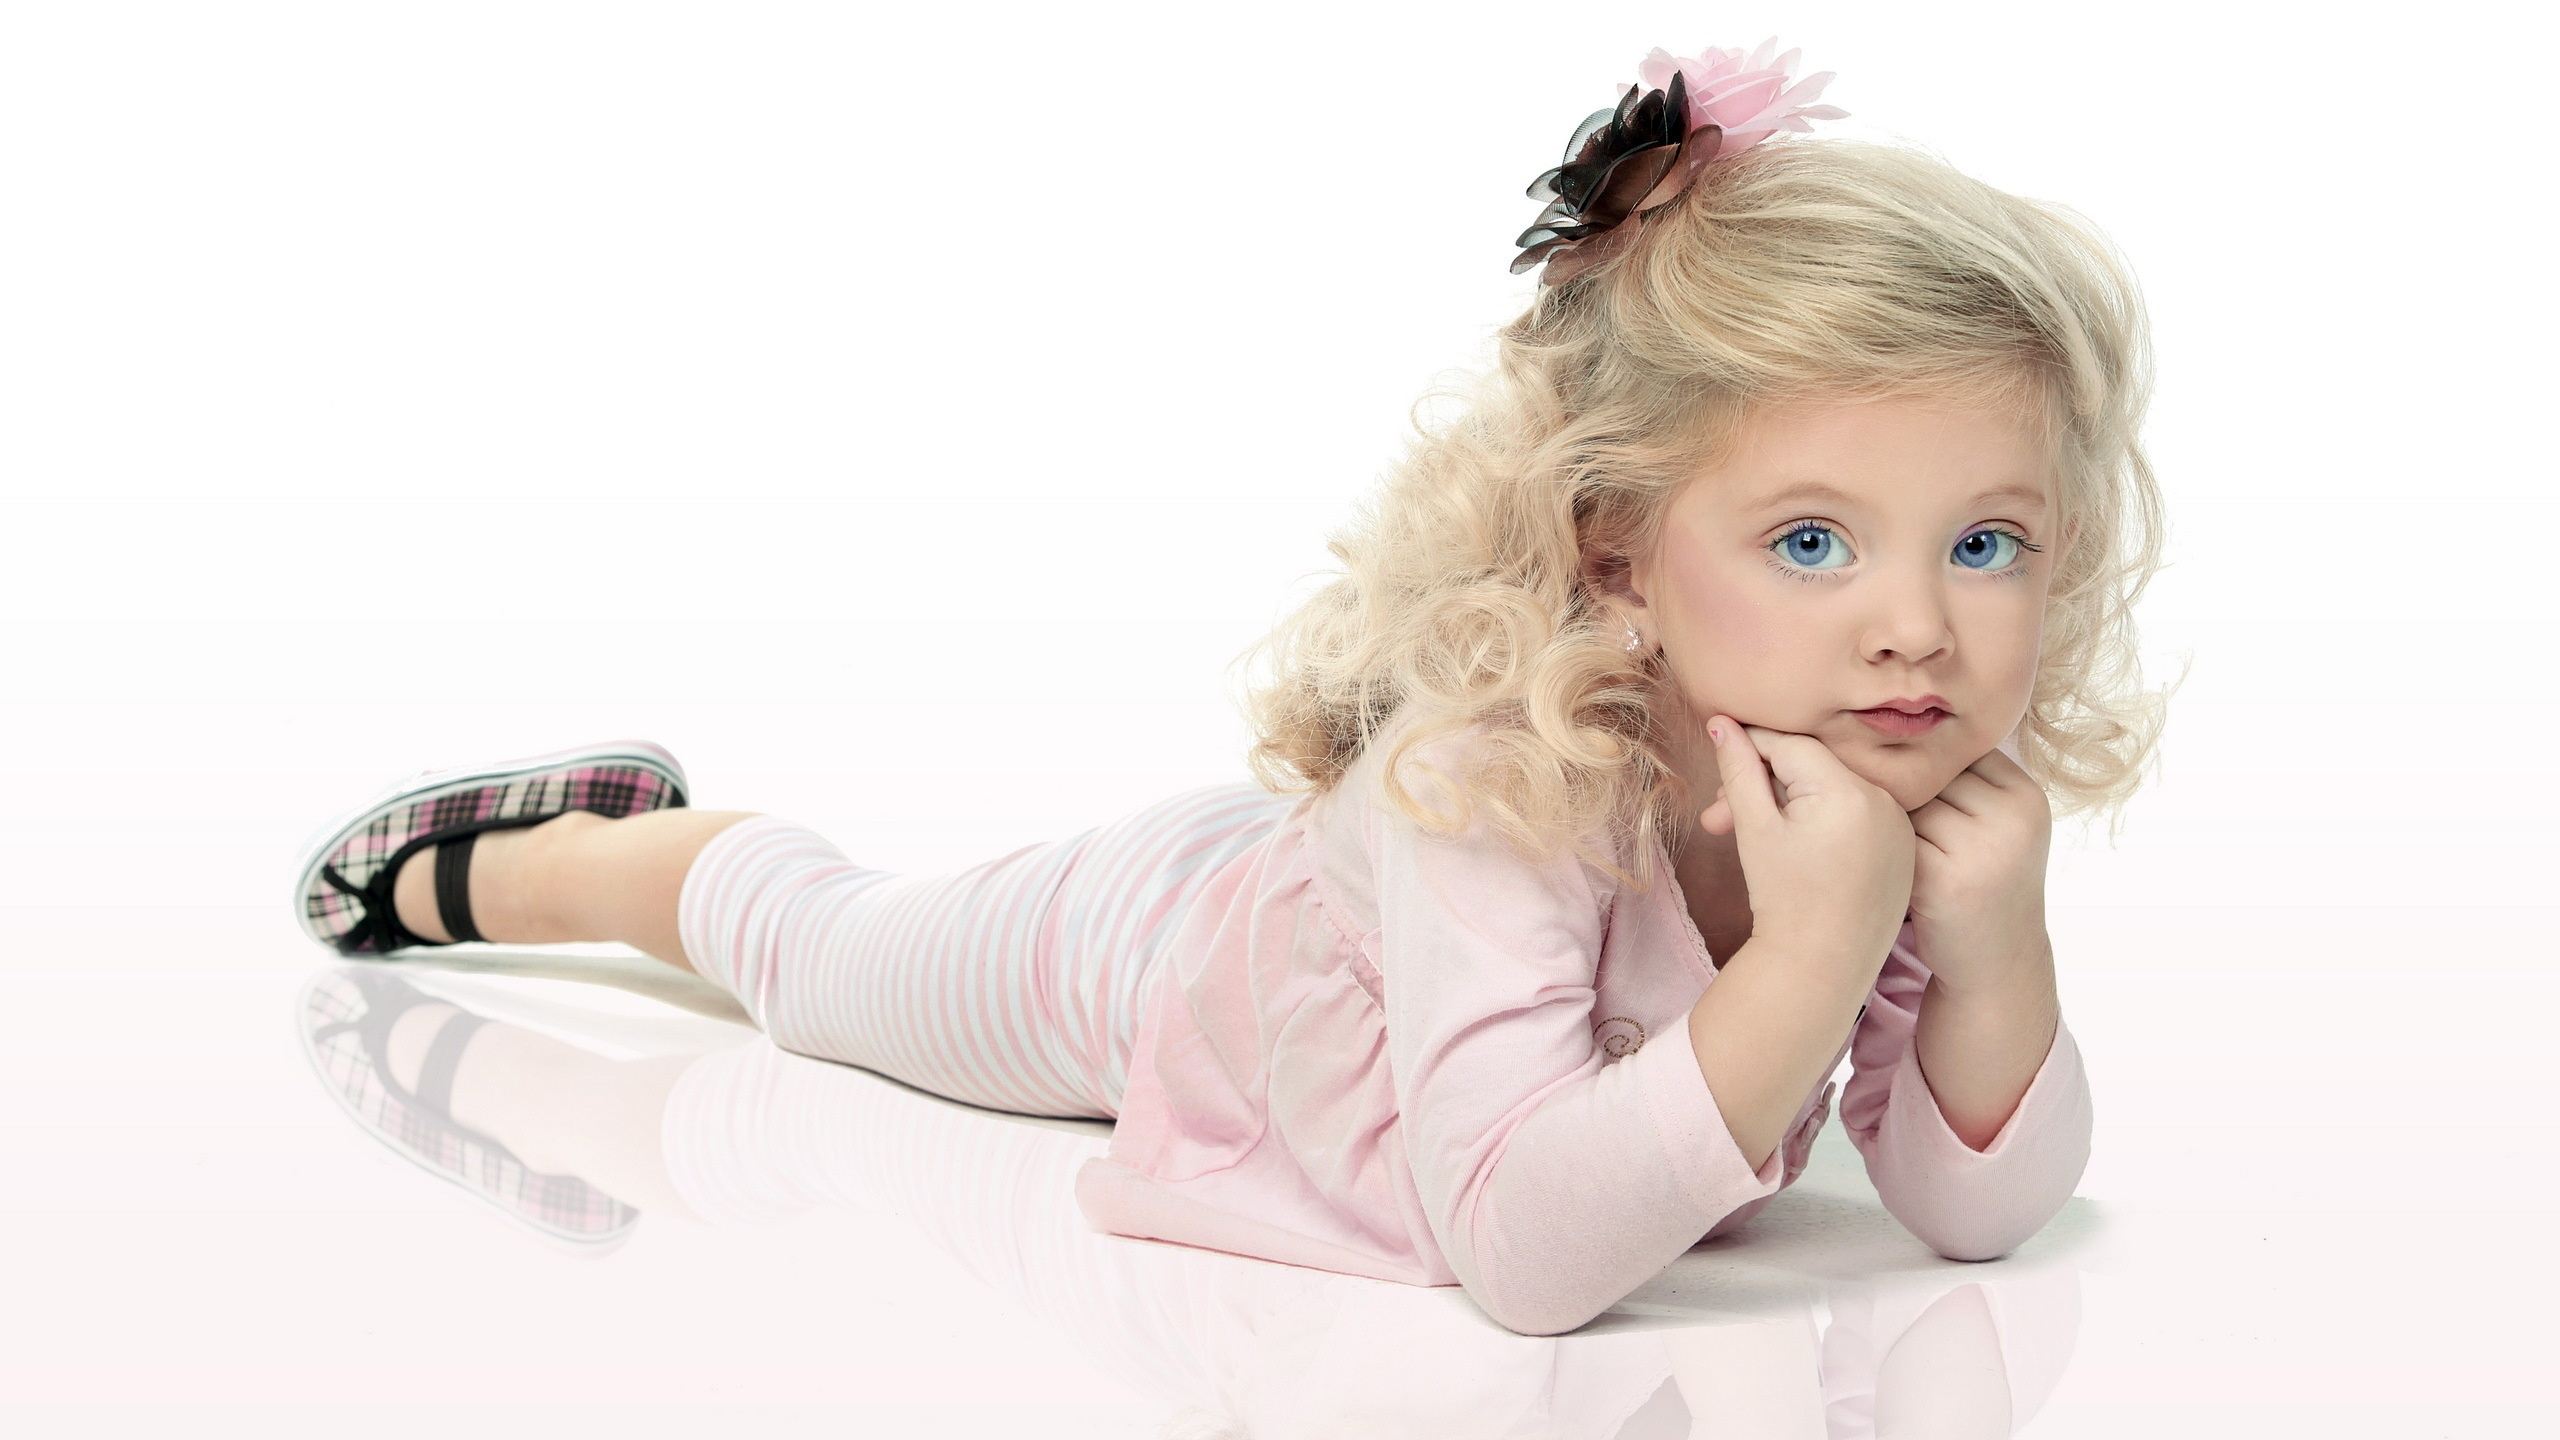 Lovely blue-eyed little princess wallpaper - 2560x1440